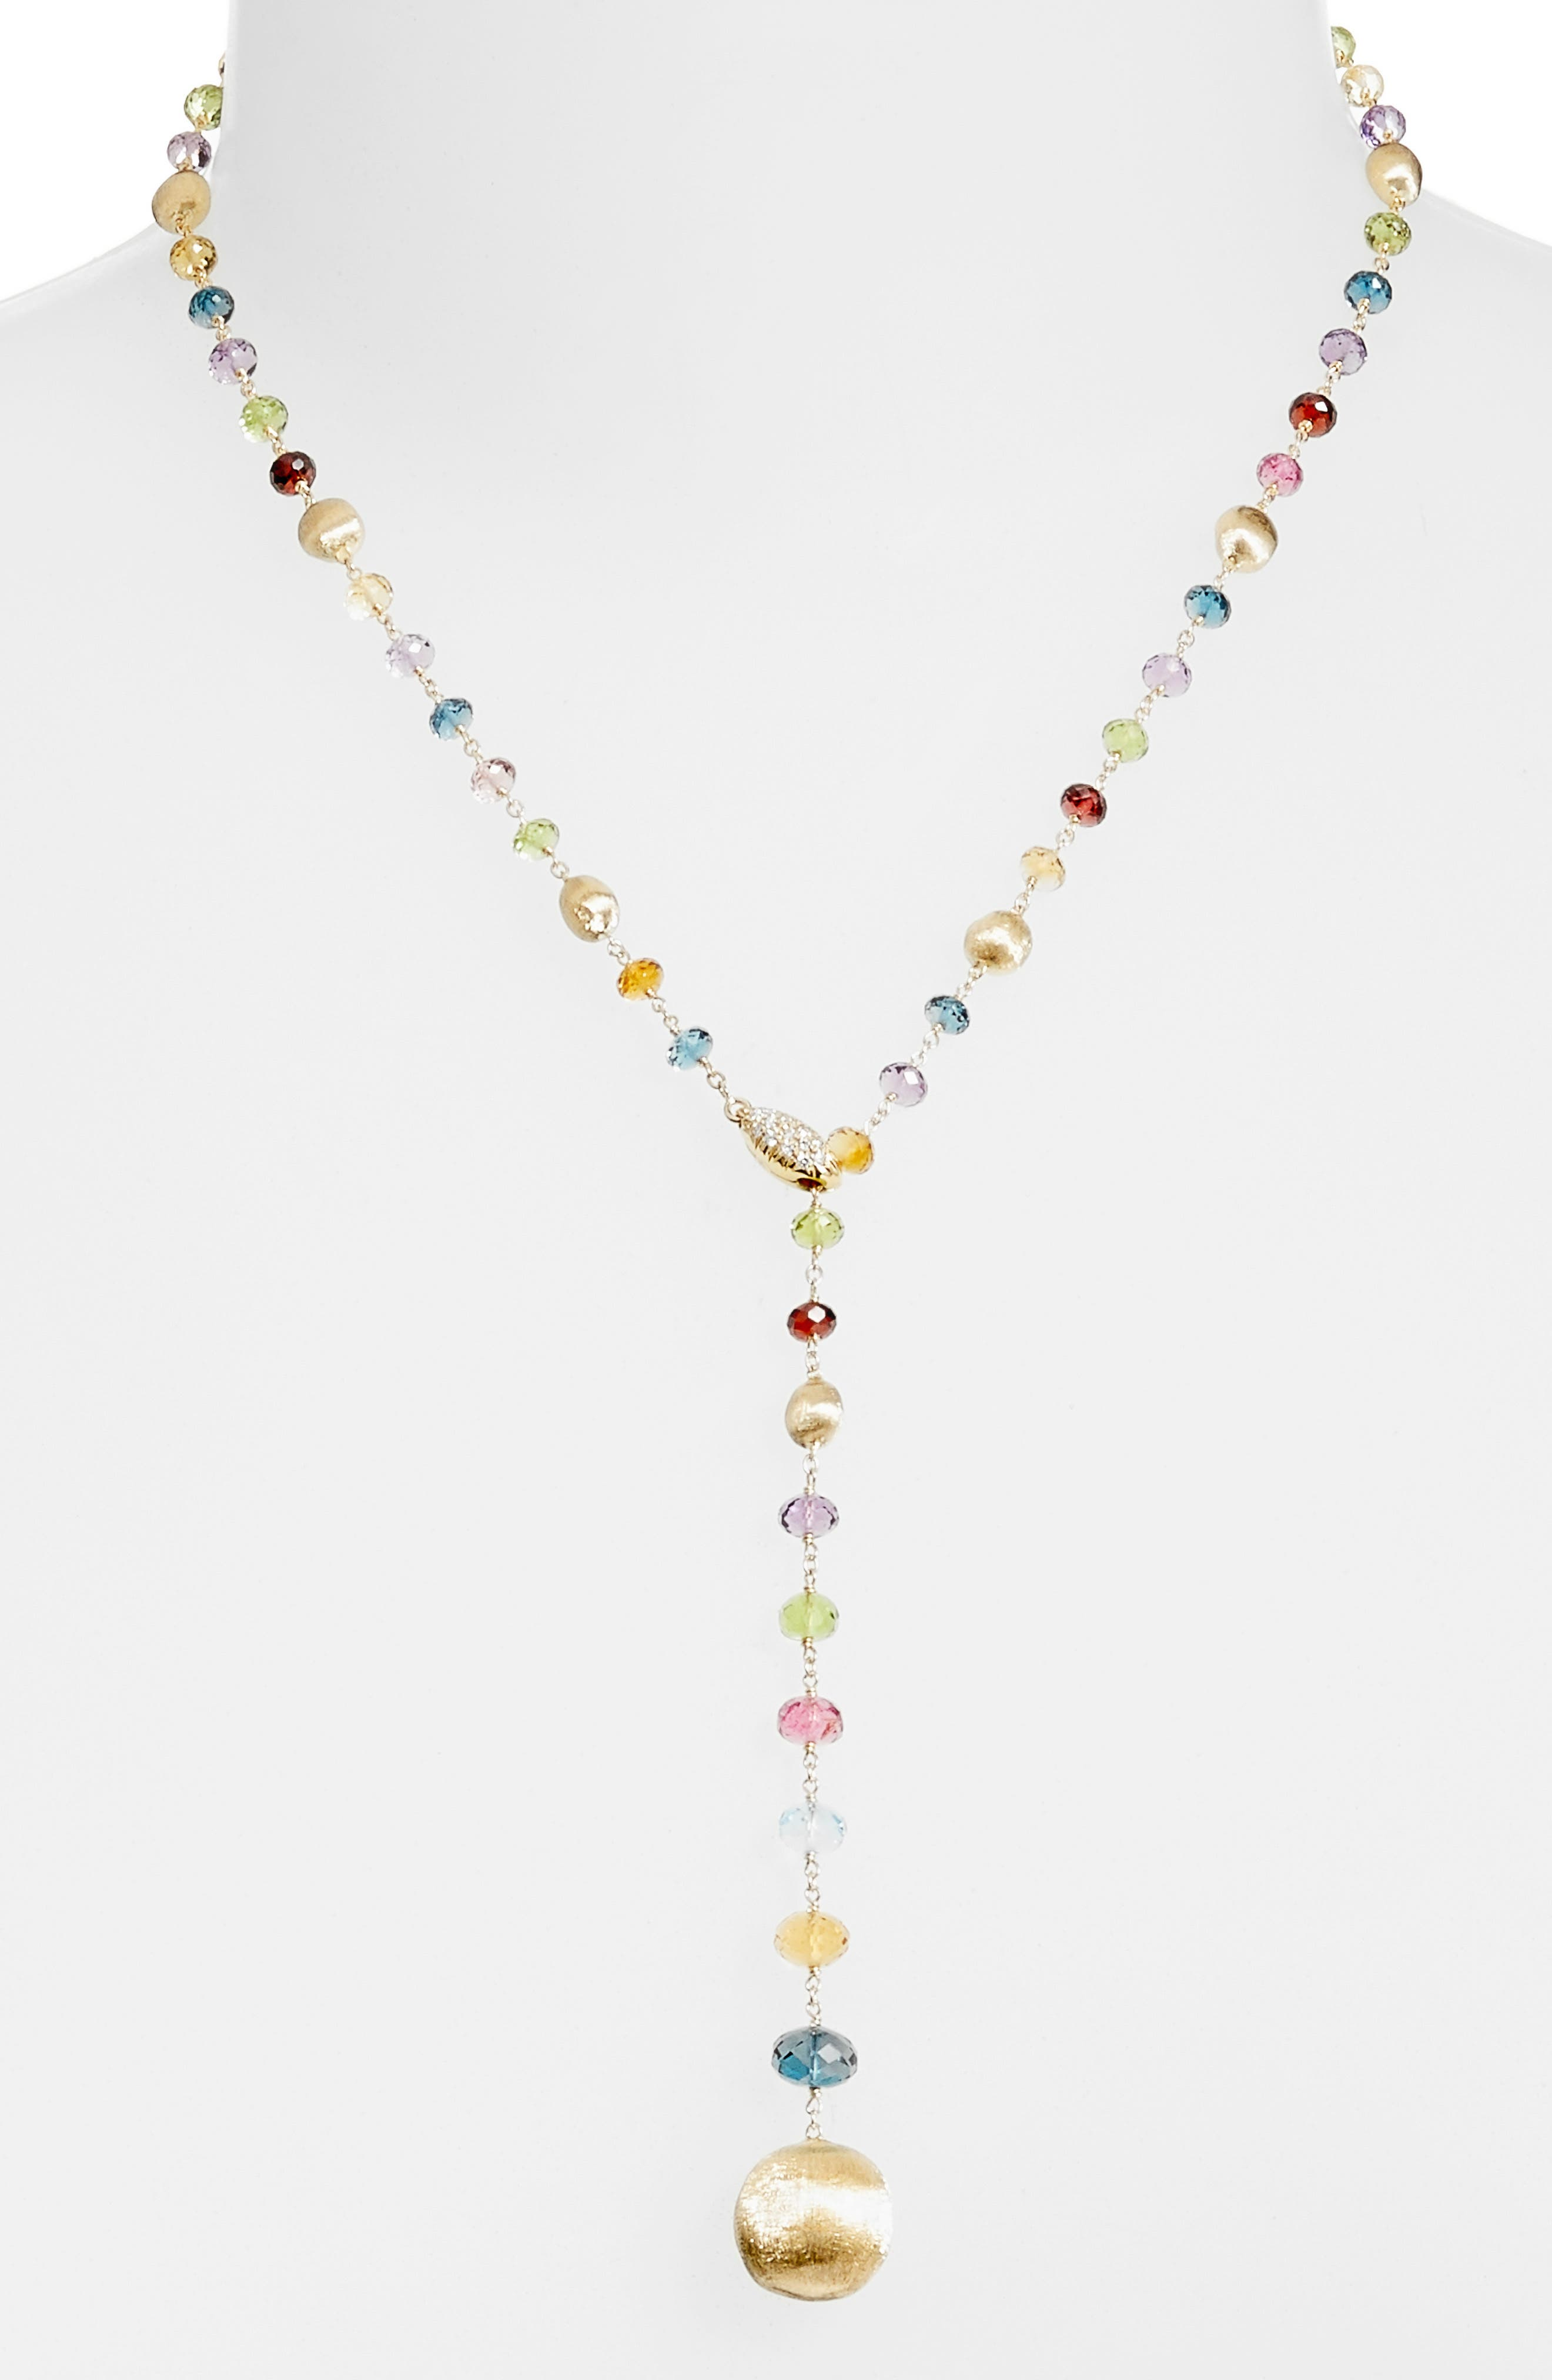 Africa Semiprecious Stone Lariat Necklace,                         Main,                         color, YELLOW GOLD